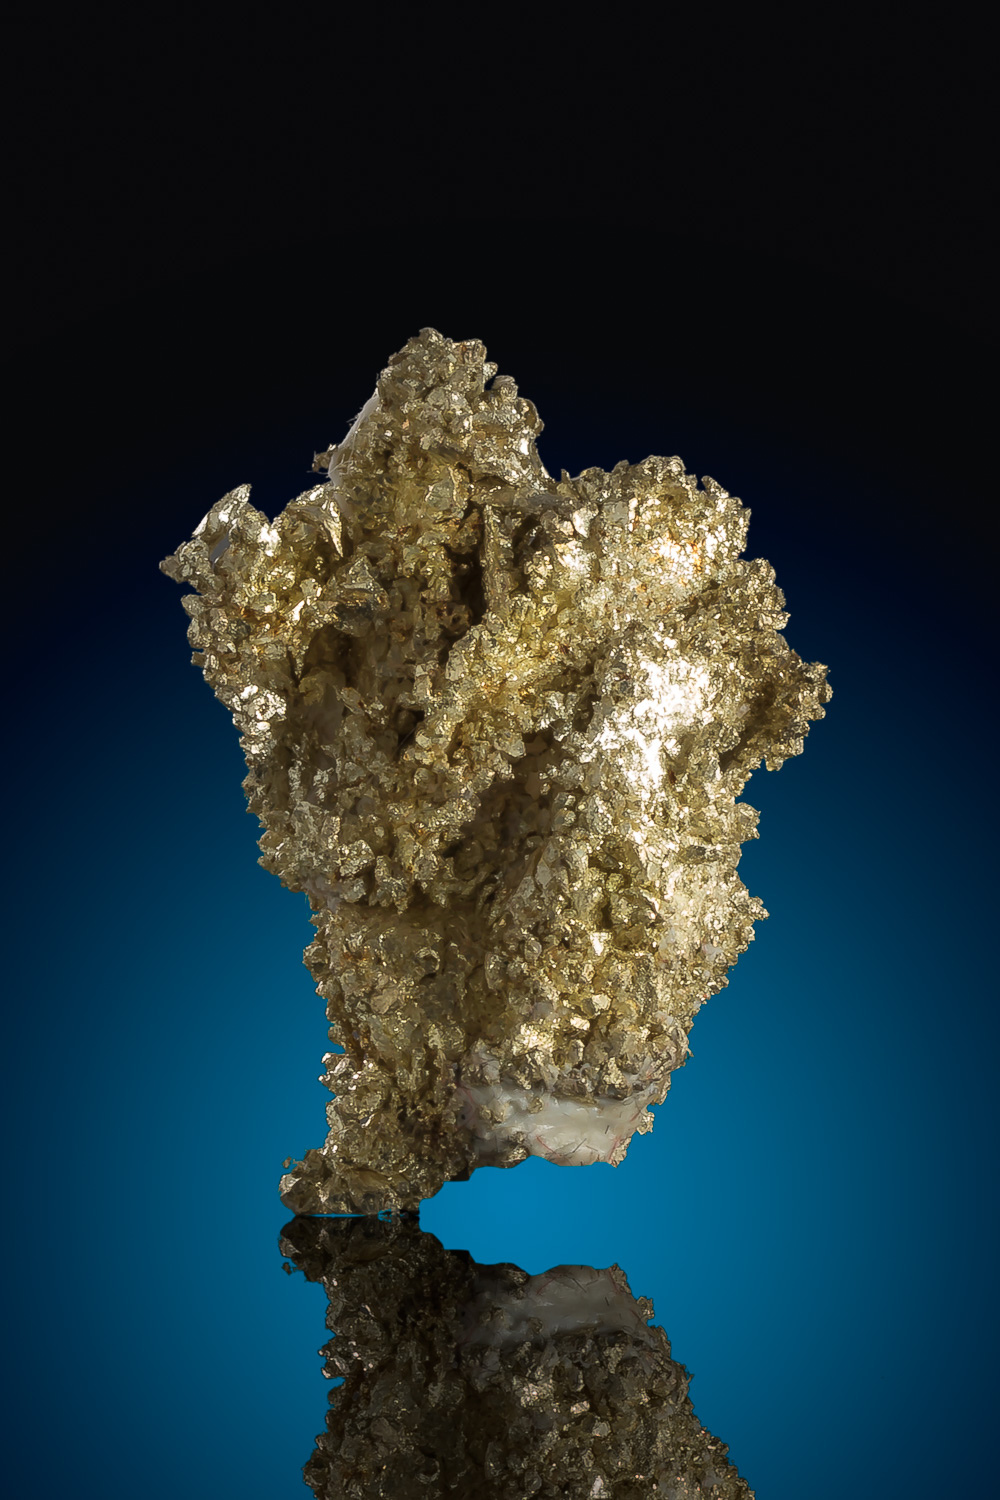 Rare Electrum Gold Crystal from Round Mountain, Nevada